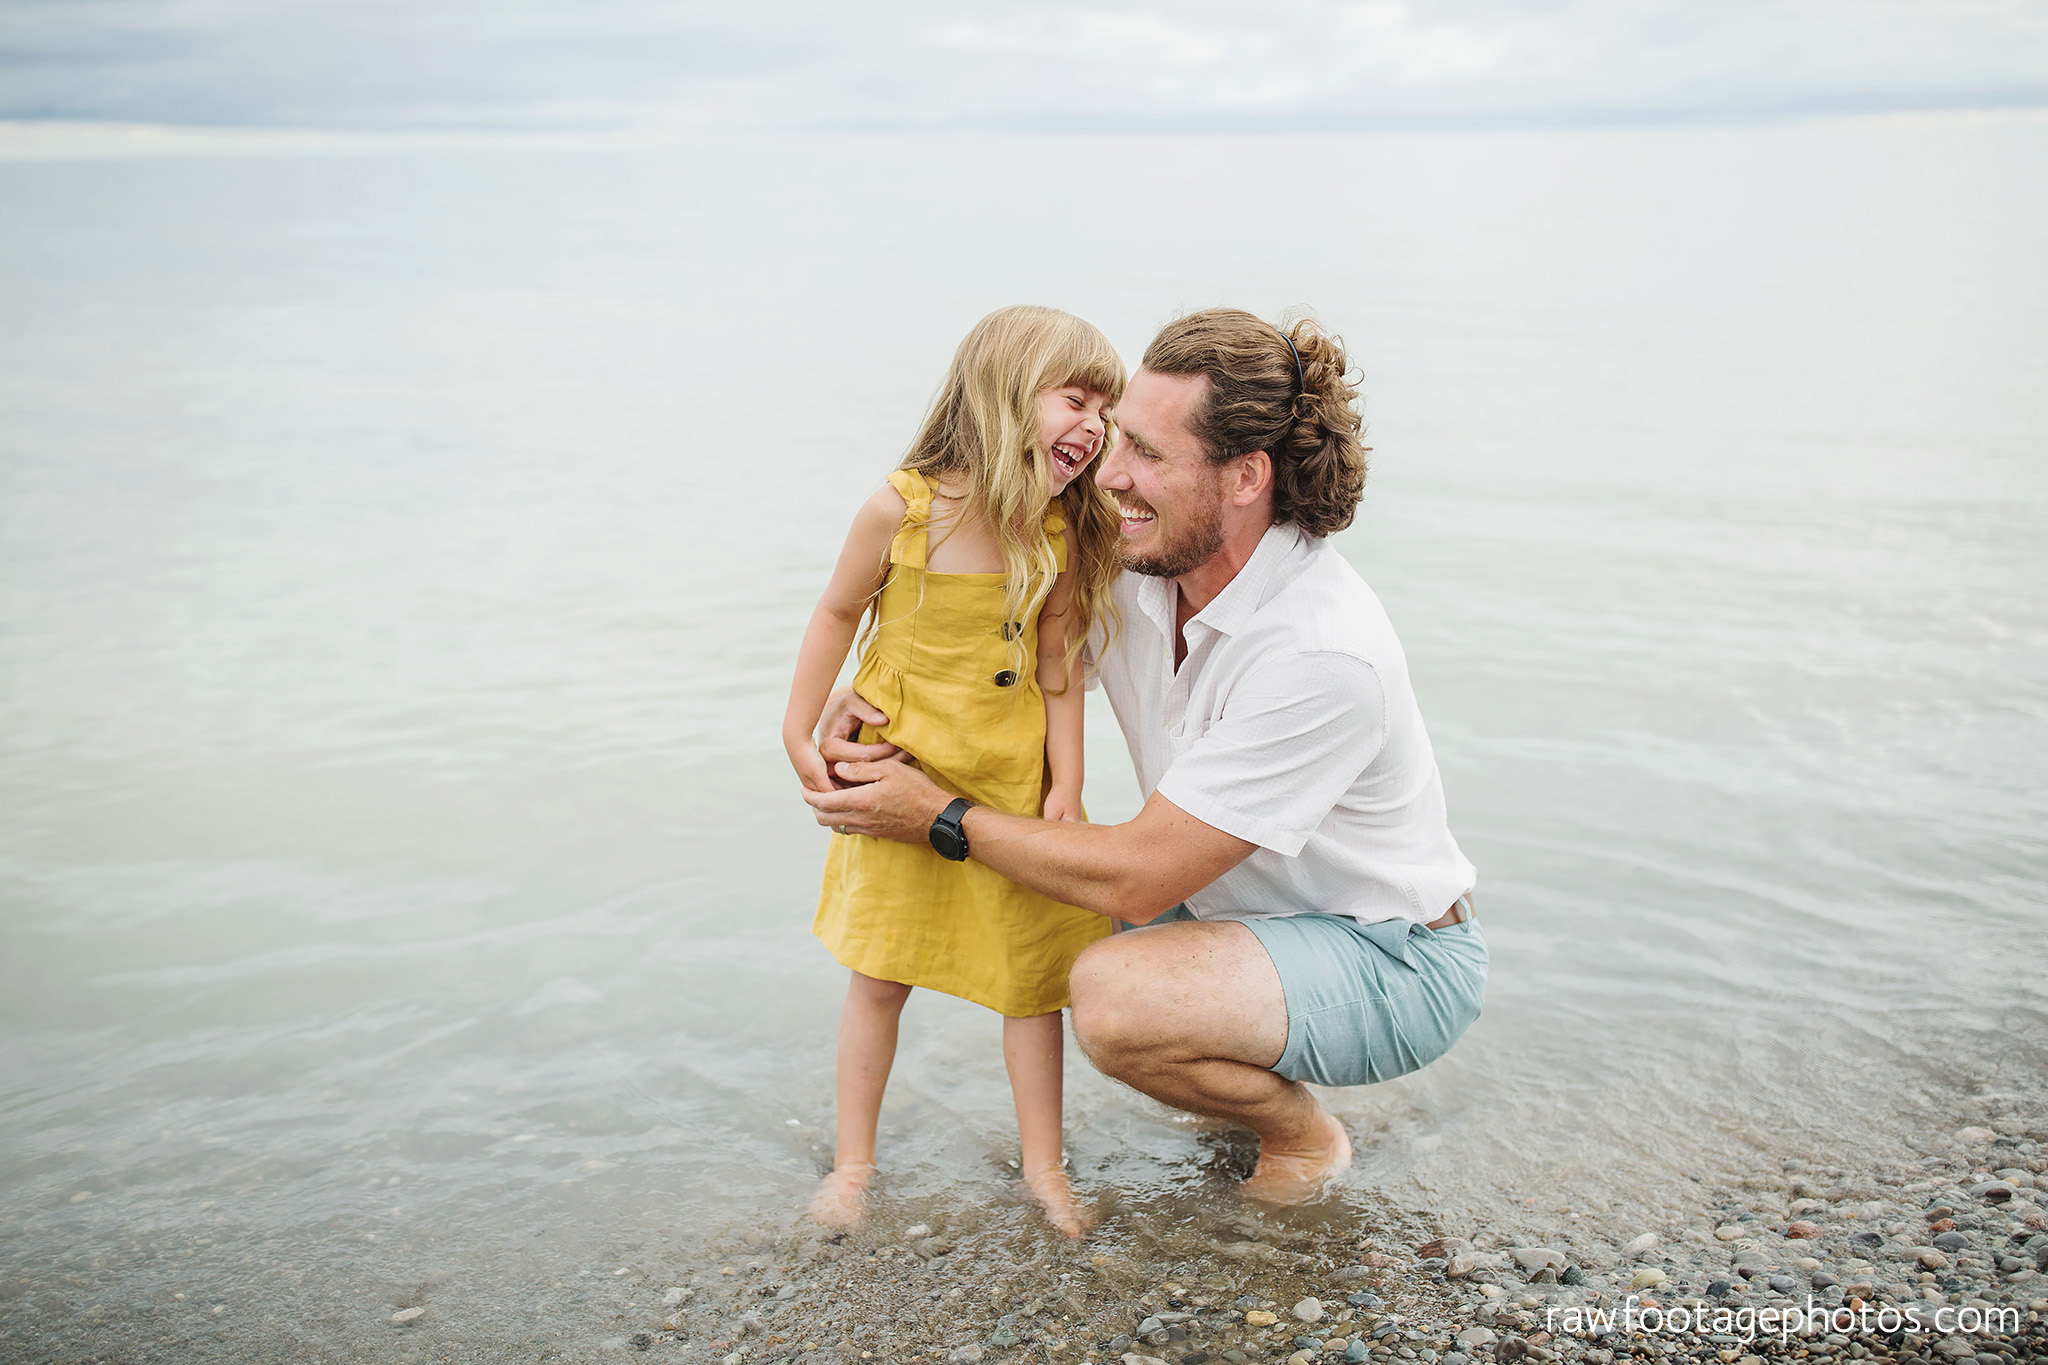 london_ontario_family_photographer-beach_minis-port_stanley_beach-raw_footage_photography053.jpg